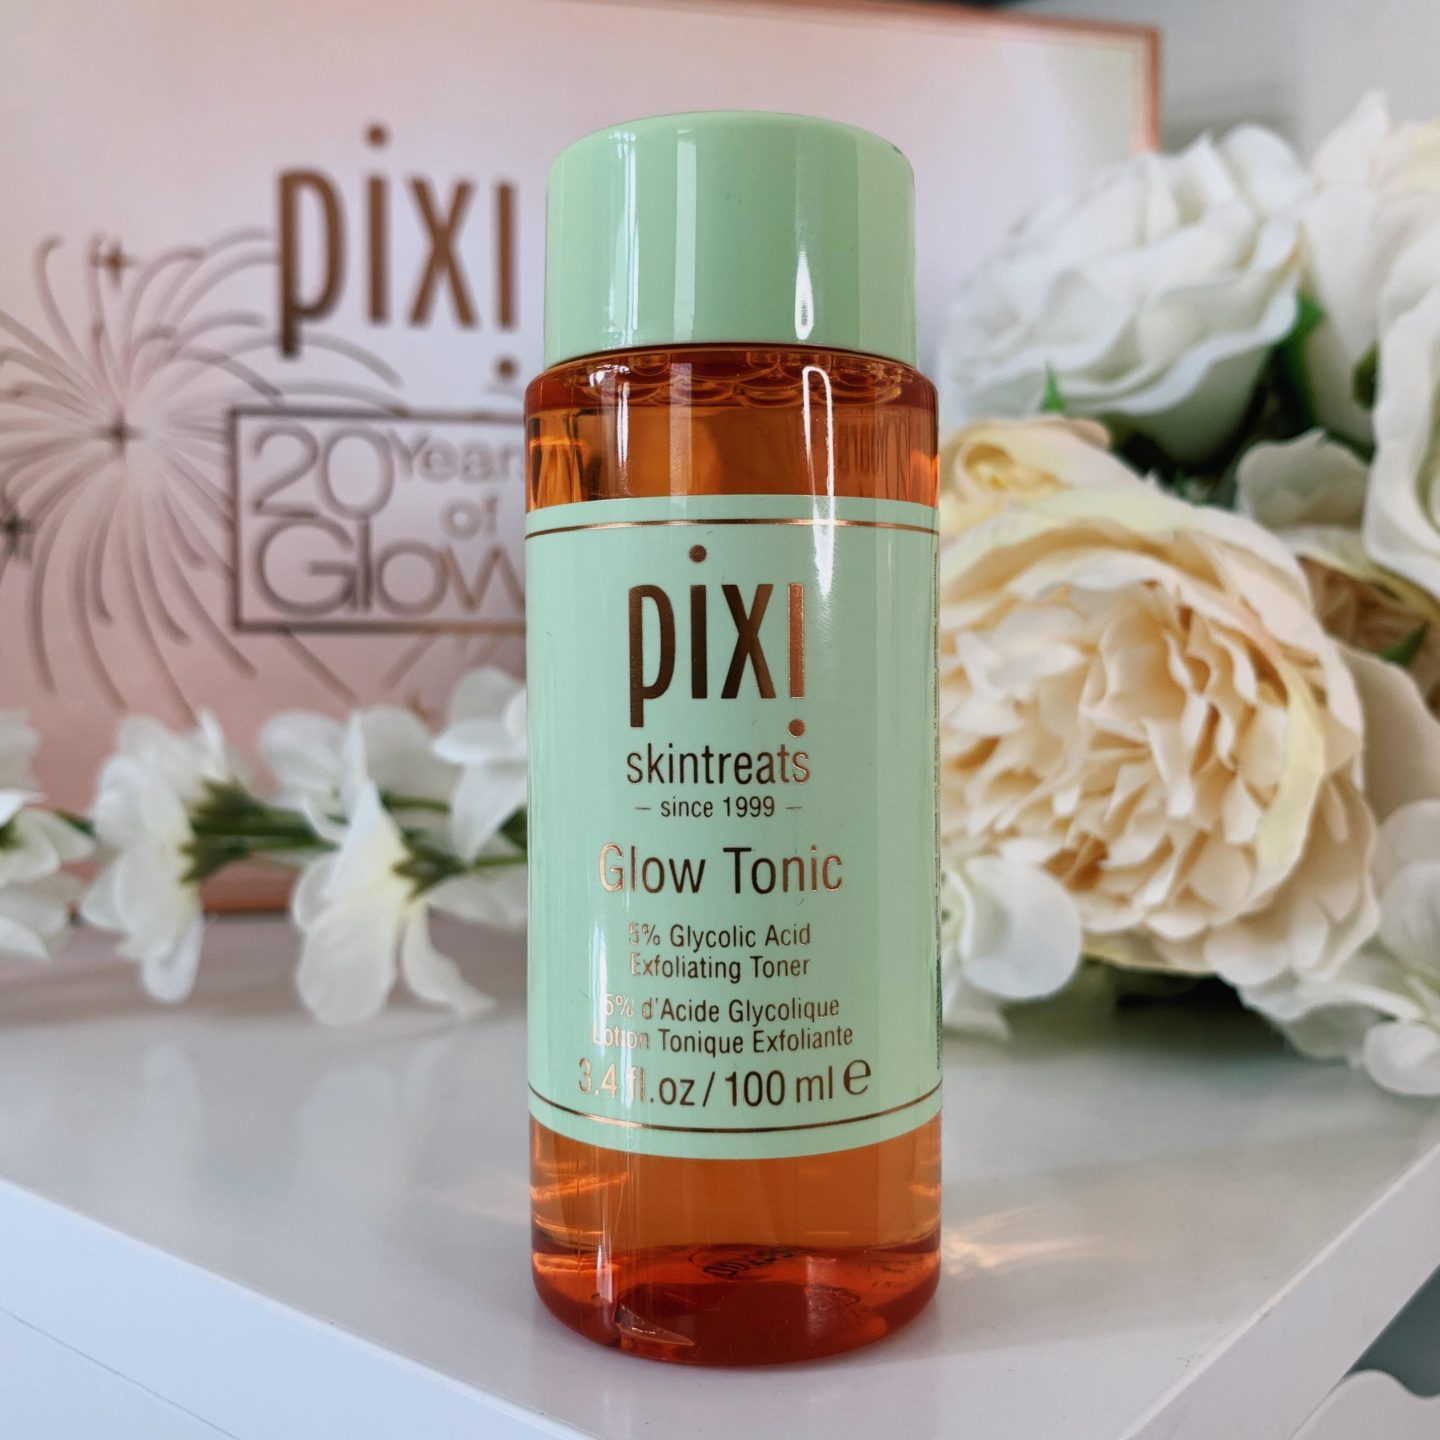 Pixi Glow Tonic - Pixi Beauty 20 Years of Glow - Miss Boux